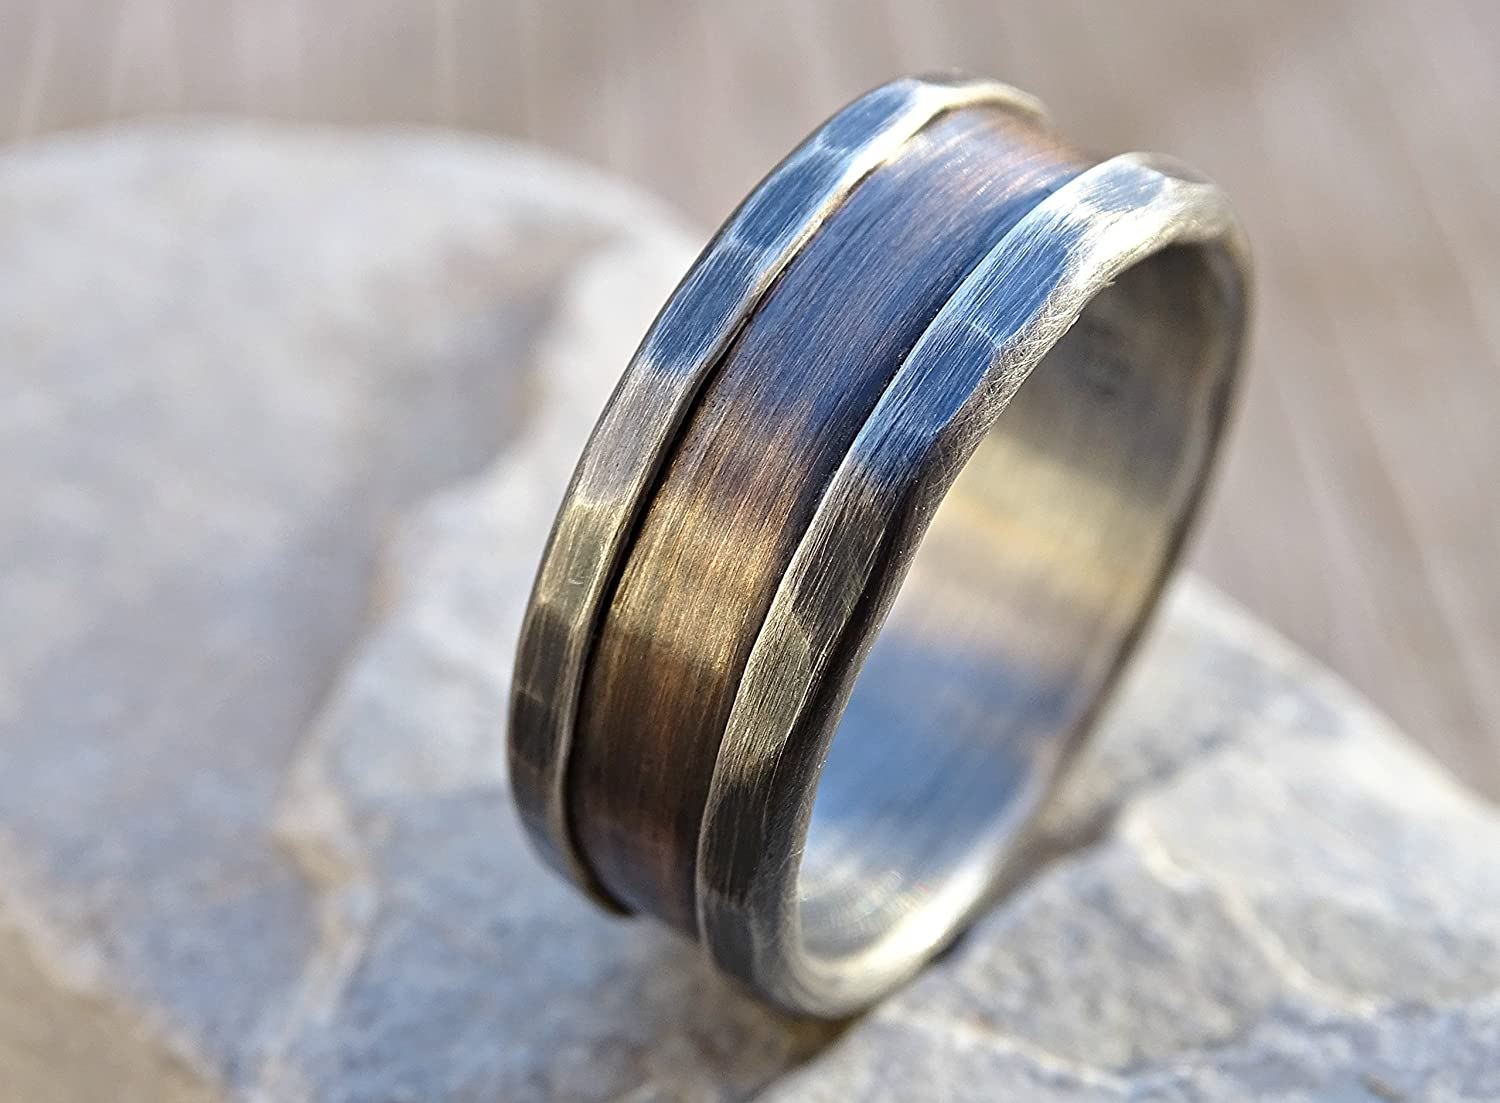 Amazon: Bronze Ring Silver, Bronze Wedding Band, Alternate Mens Wedding  Band, Rustic Silver Ring Bronze Rustic Wedding Ring, Men's Engagement Ring,